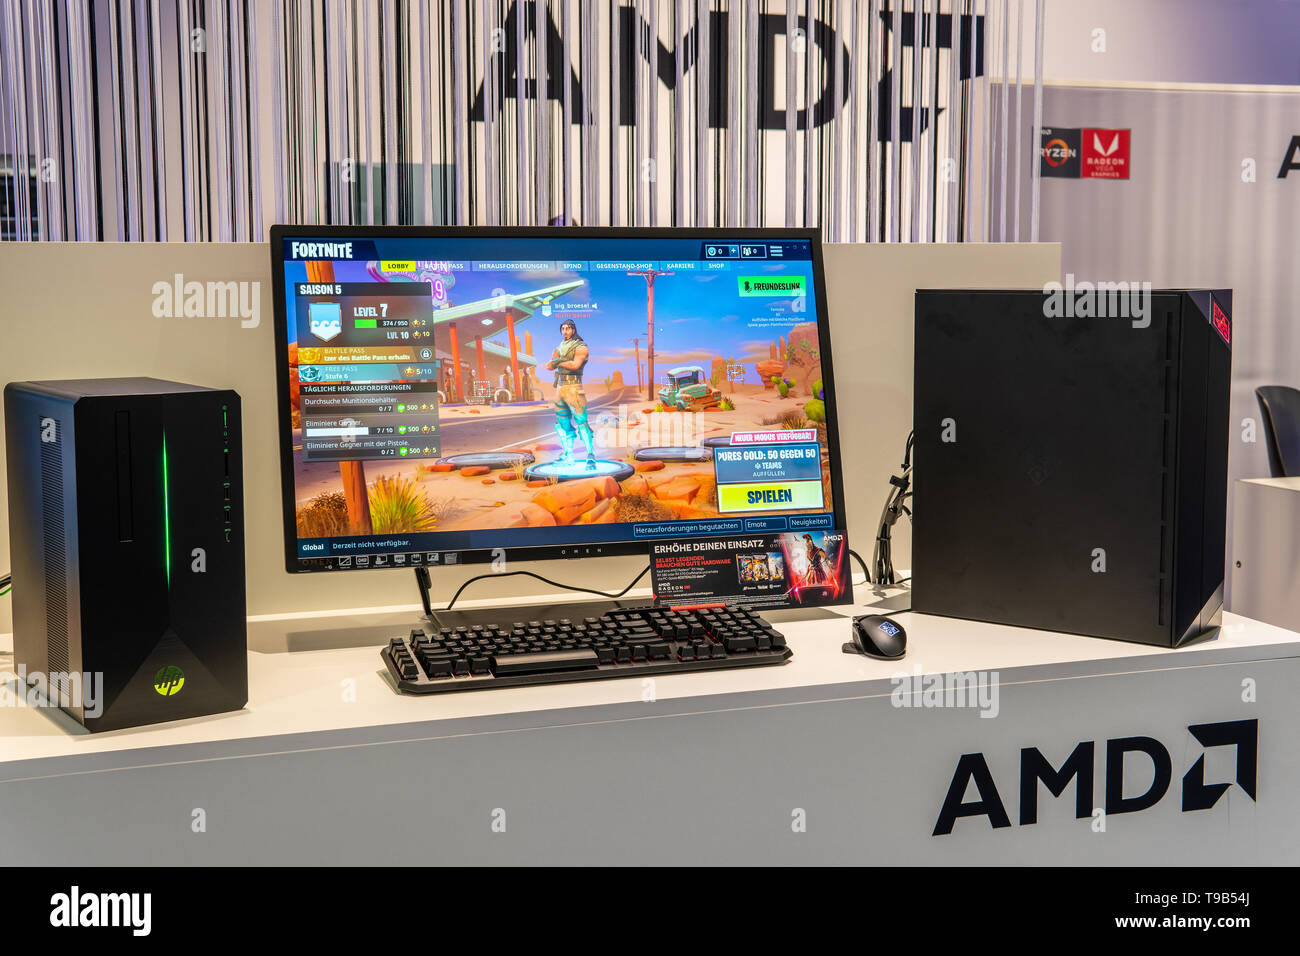 Berlin, Germany, August 31, 2018, AMD PC Computer with Ryzen CPU, Radeon GPU graphic card at AMD exhibition showroom at Global Innovations Show IFA - Stock Image